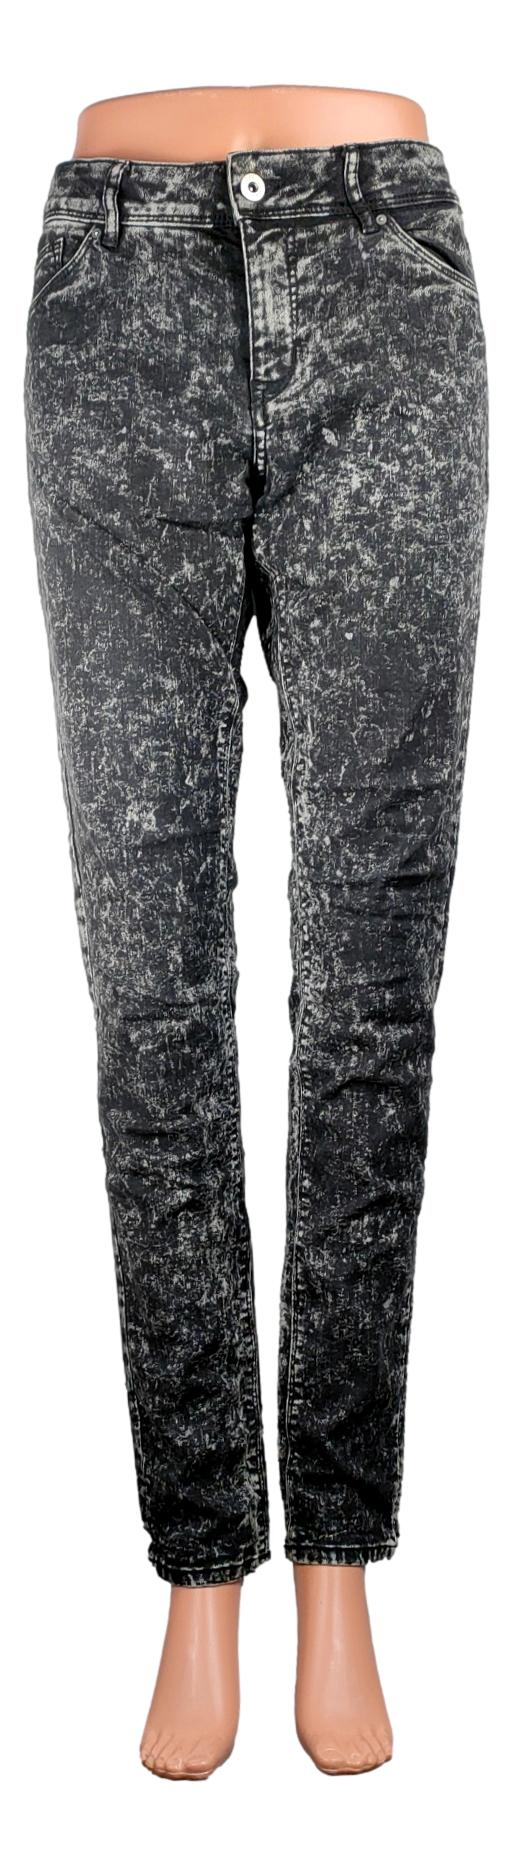 Jean Divided - Taille 42